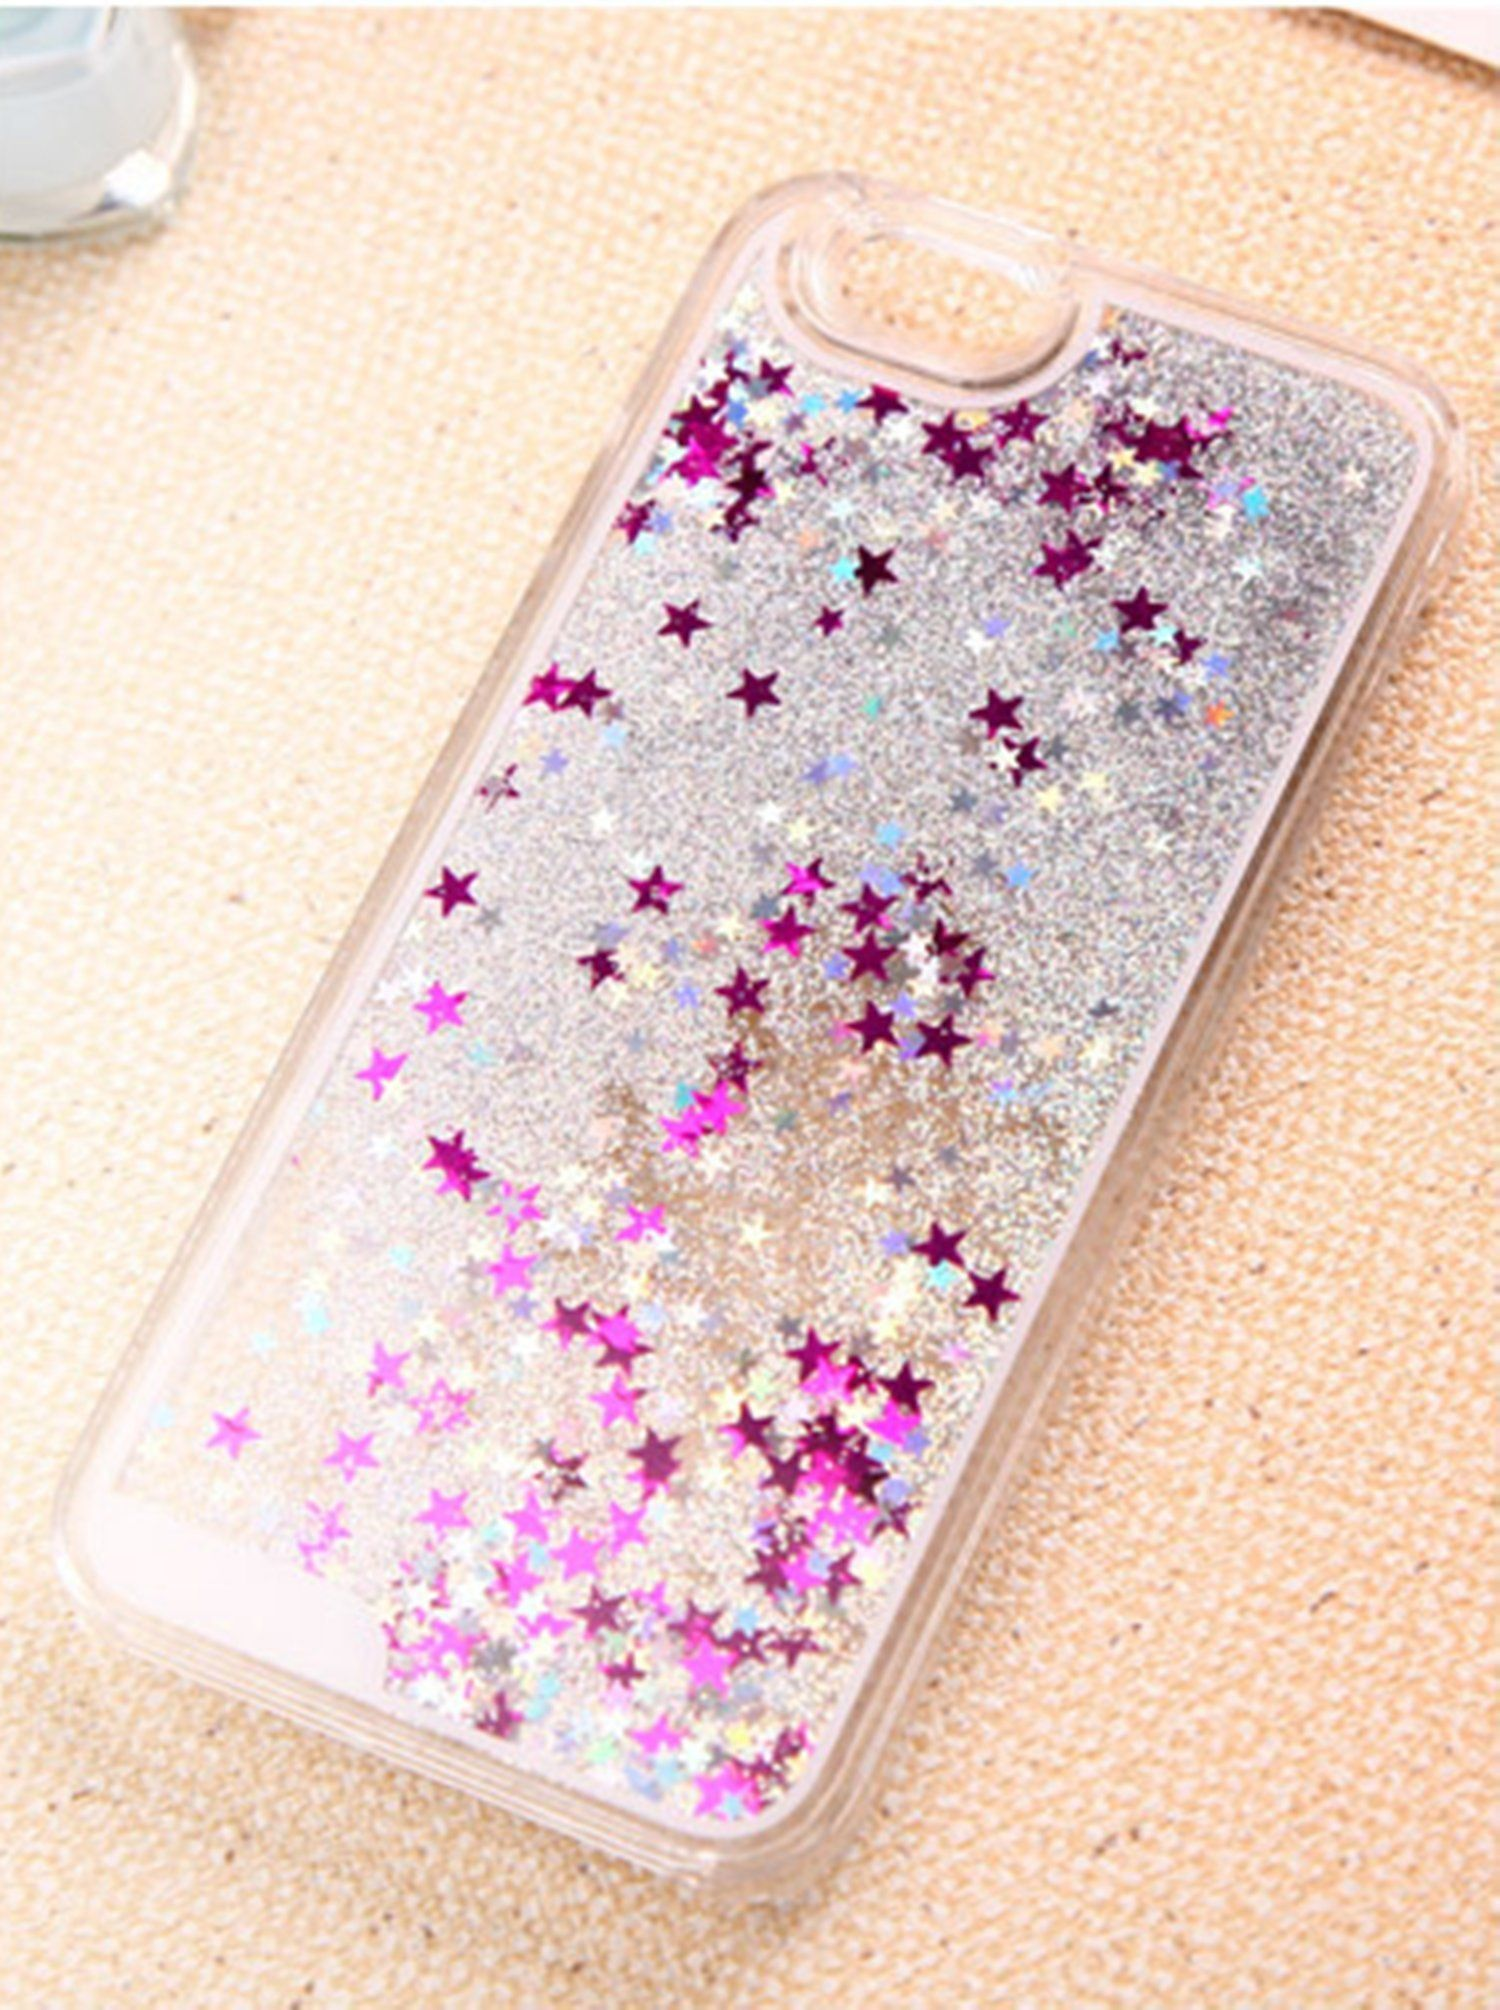 iphone case with glitter inside for iphone 5s turpro plastic 17630